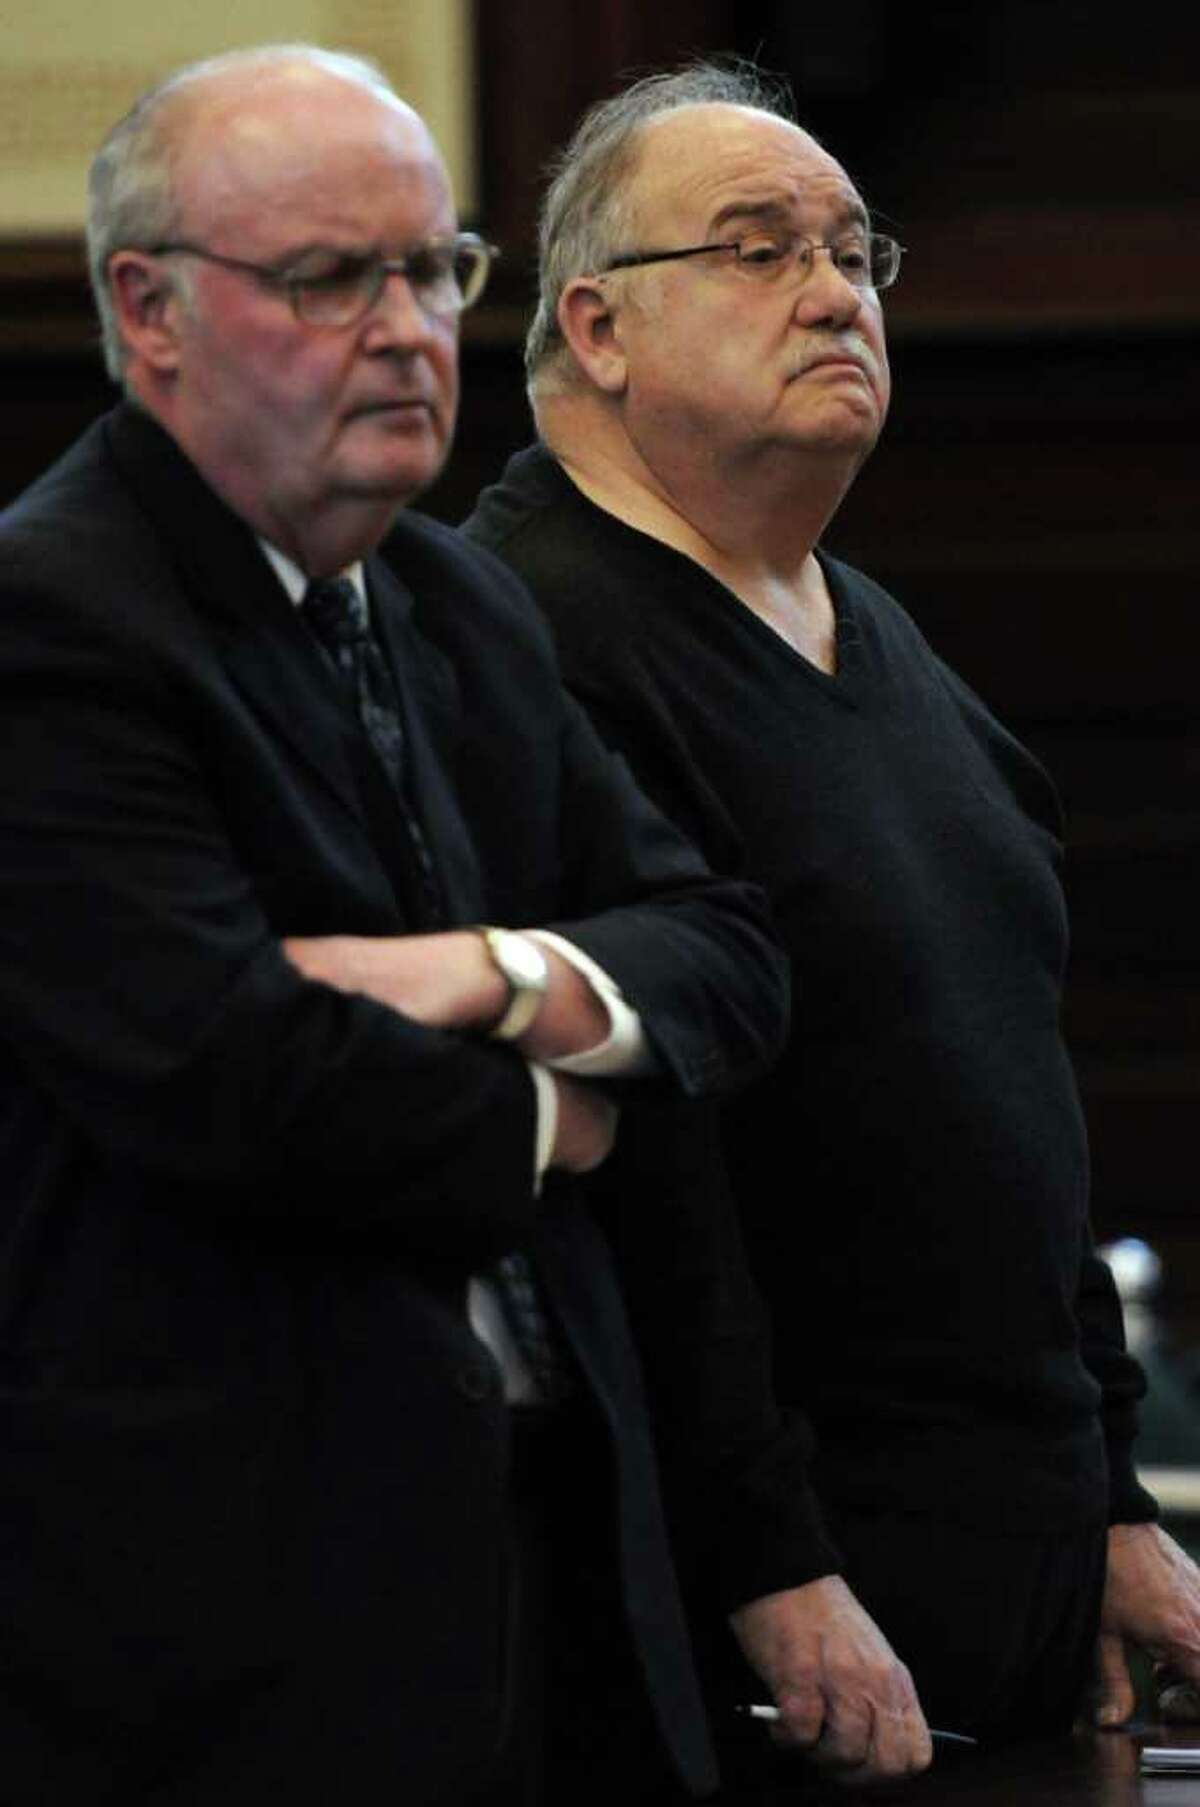 Anthony J. Renna, right, pleads guilty to forgery for his role in a ballot fraud case in Rensselaer County Court on Tuesday Dec. 20, 2011 in Troy, N.Y. (Philip Kamrass / Times Union archive)